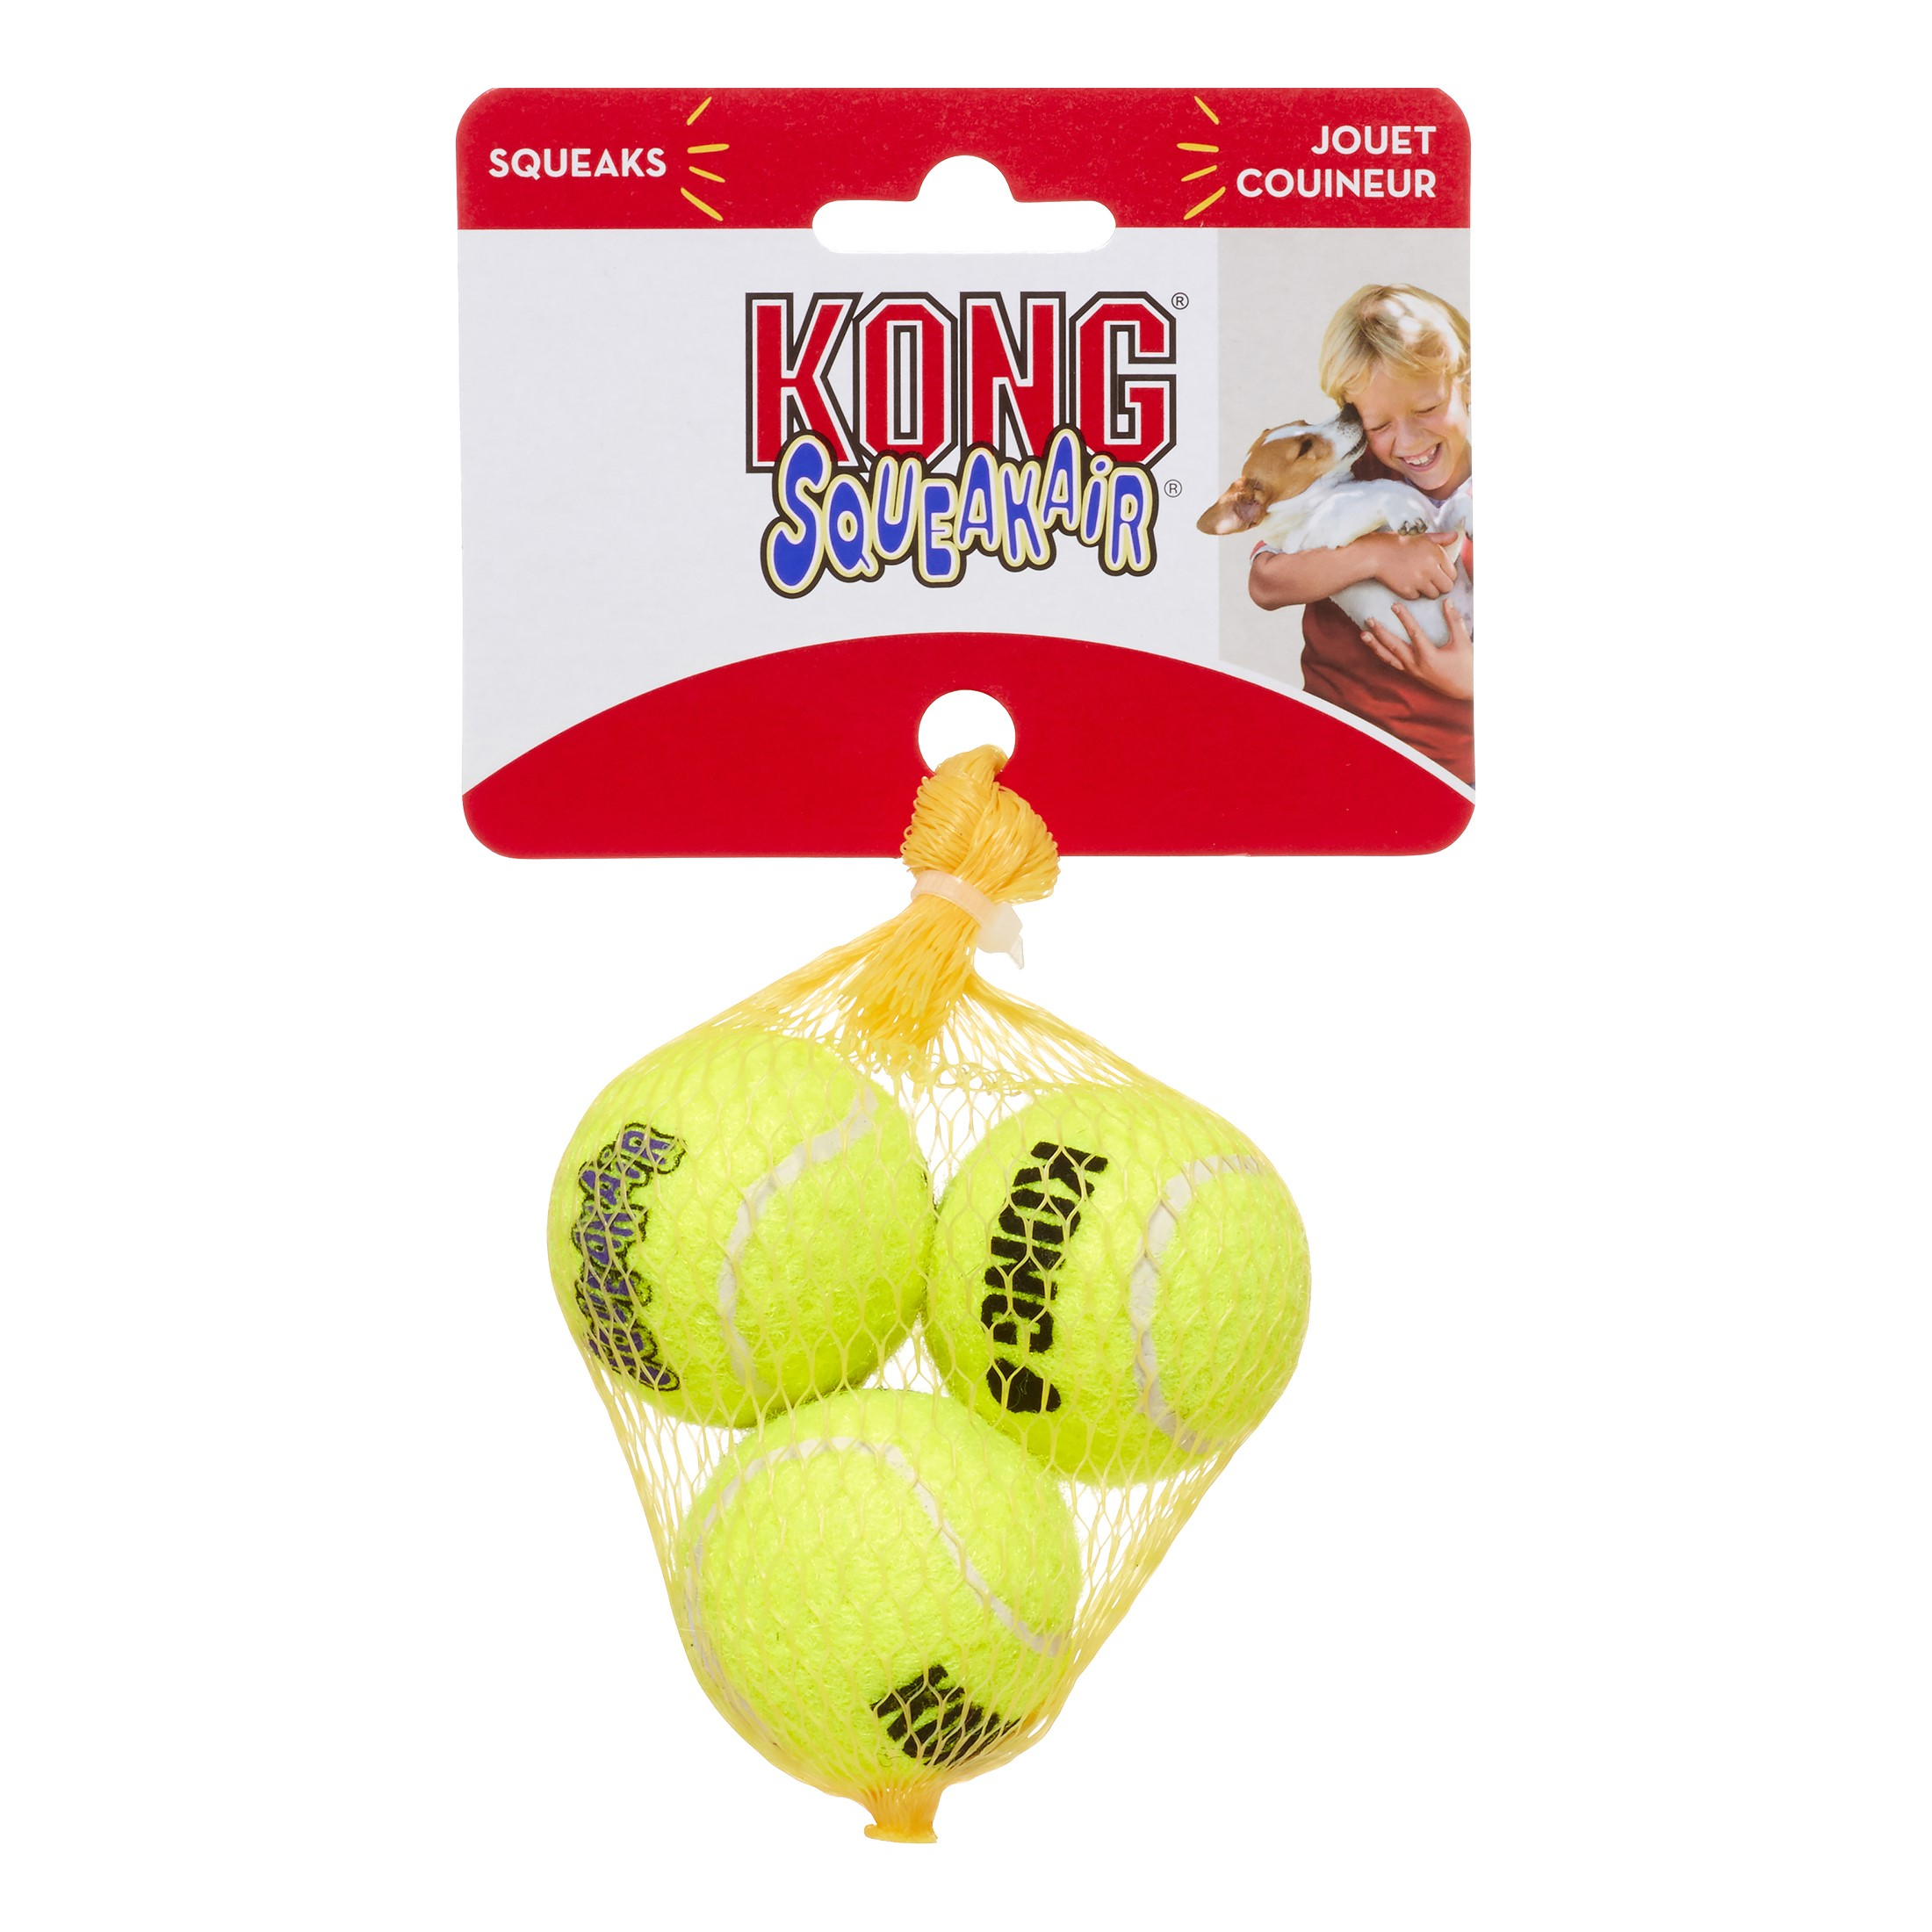 KONG Airdog Squeaker Ball Dog Toy, X-Small, 3 Count